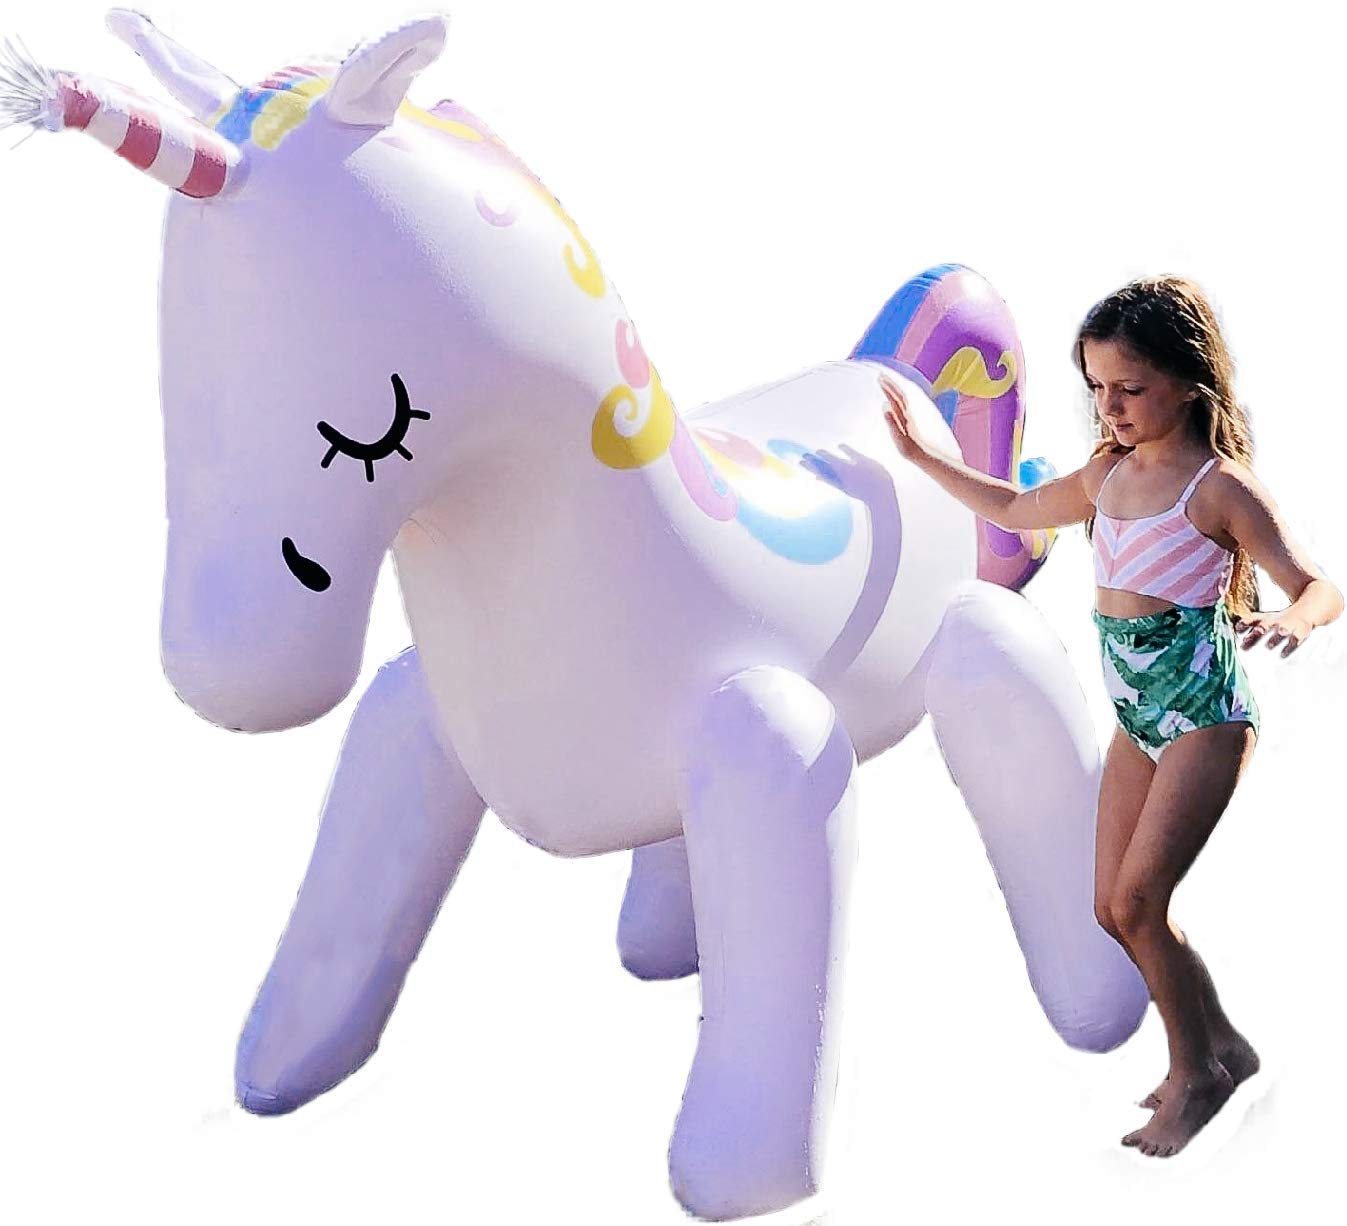 THE ORIGINAL UNICORN SPRINKLER Toy - Giant Inflatable Unicorn Sprinkler for Kids Adults - Great Outdoor Birthday Party… 3